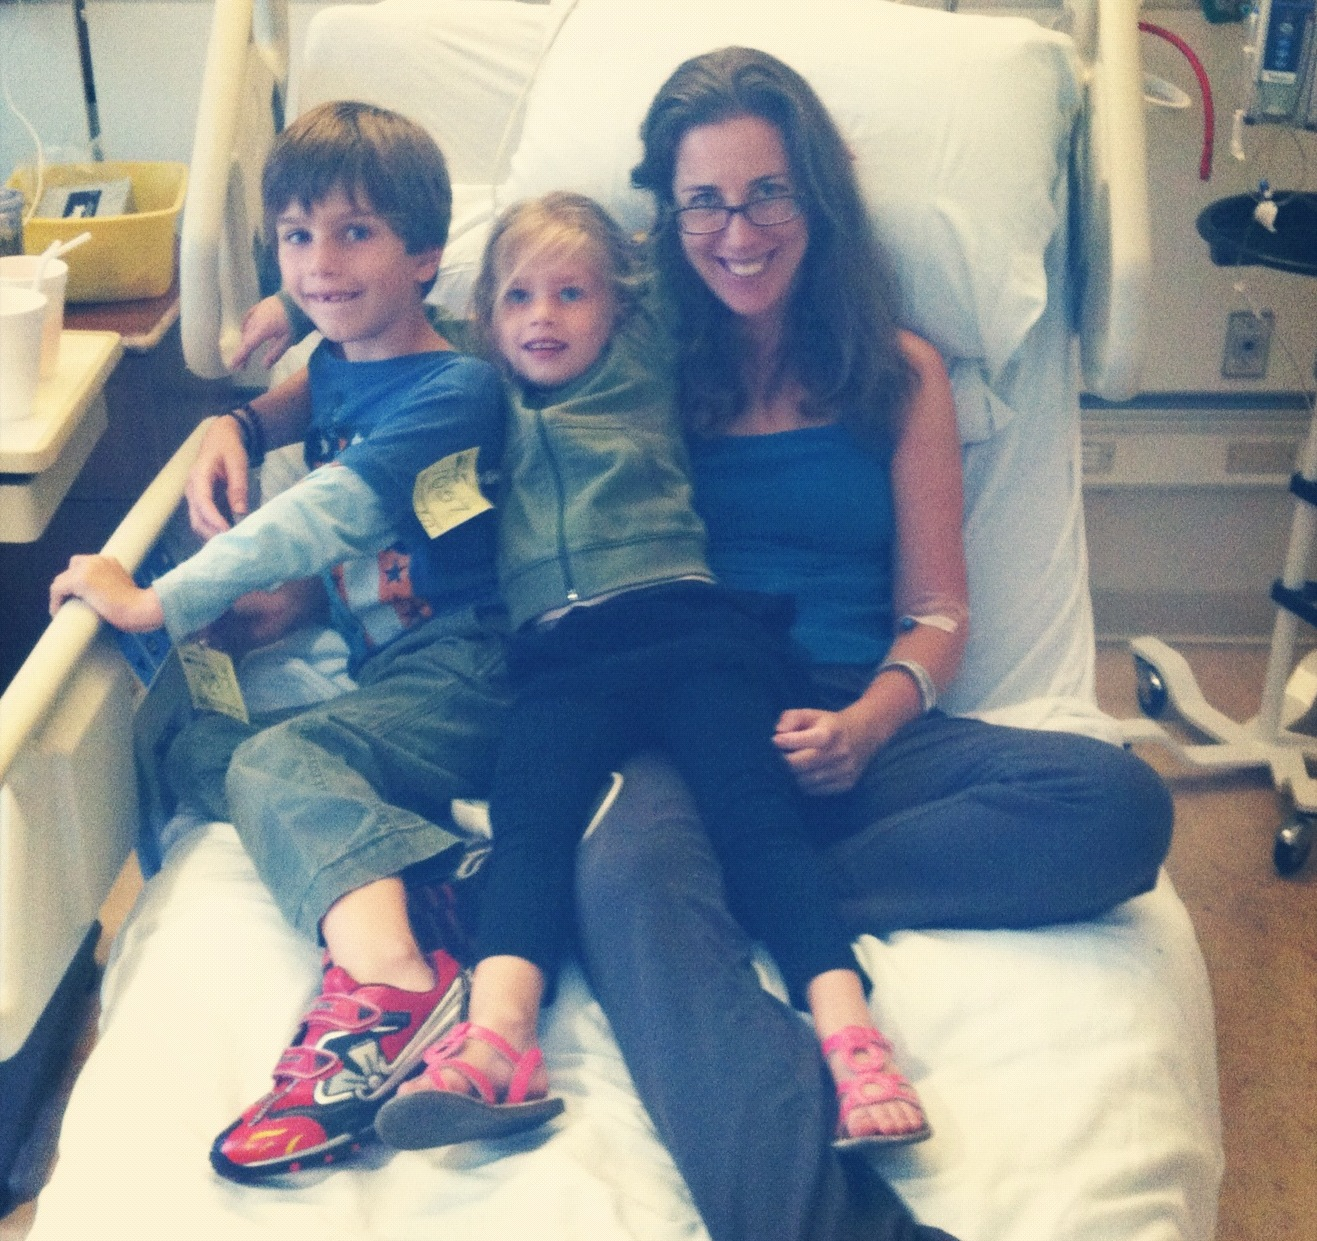 Mom sitting in hospital bed with two kids